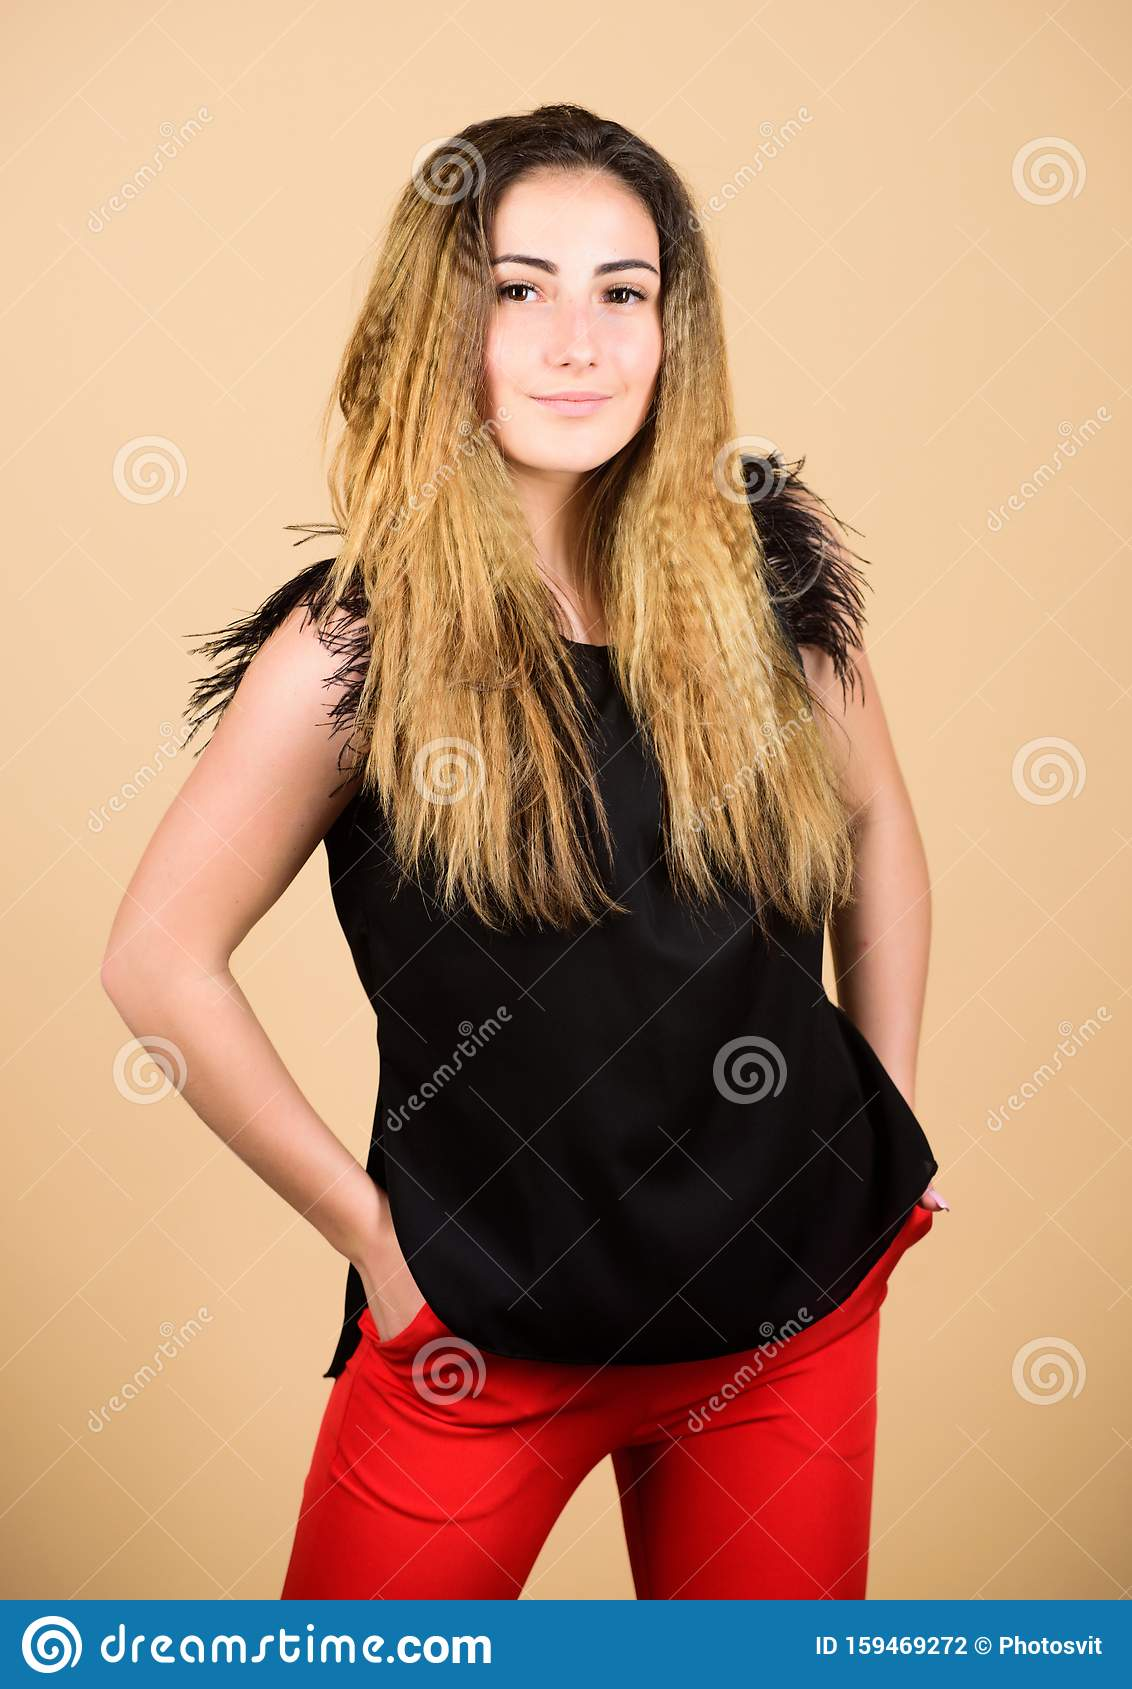 Curling And Crimping Hair Hairdresser Styling Tips Nice And Easy Trendy Crimped Hairstyle Fashion Girl Stylish Stock Photo Image Of Model Hairdresser 159469272